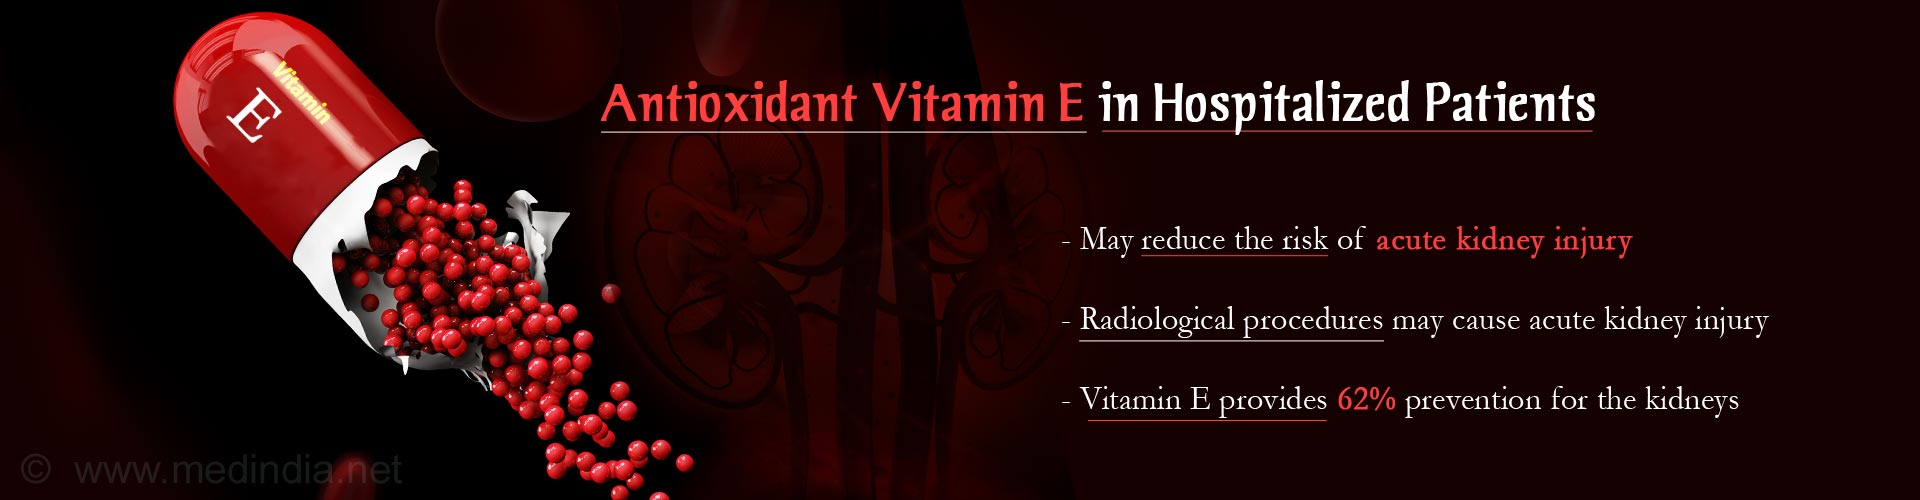 Antioxidant Vitamin E May Prevent Acute Kidney Injury in Hospitalized Patients